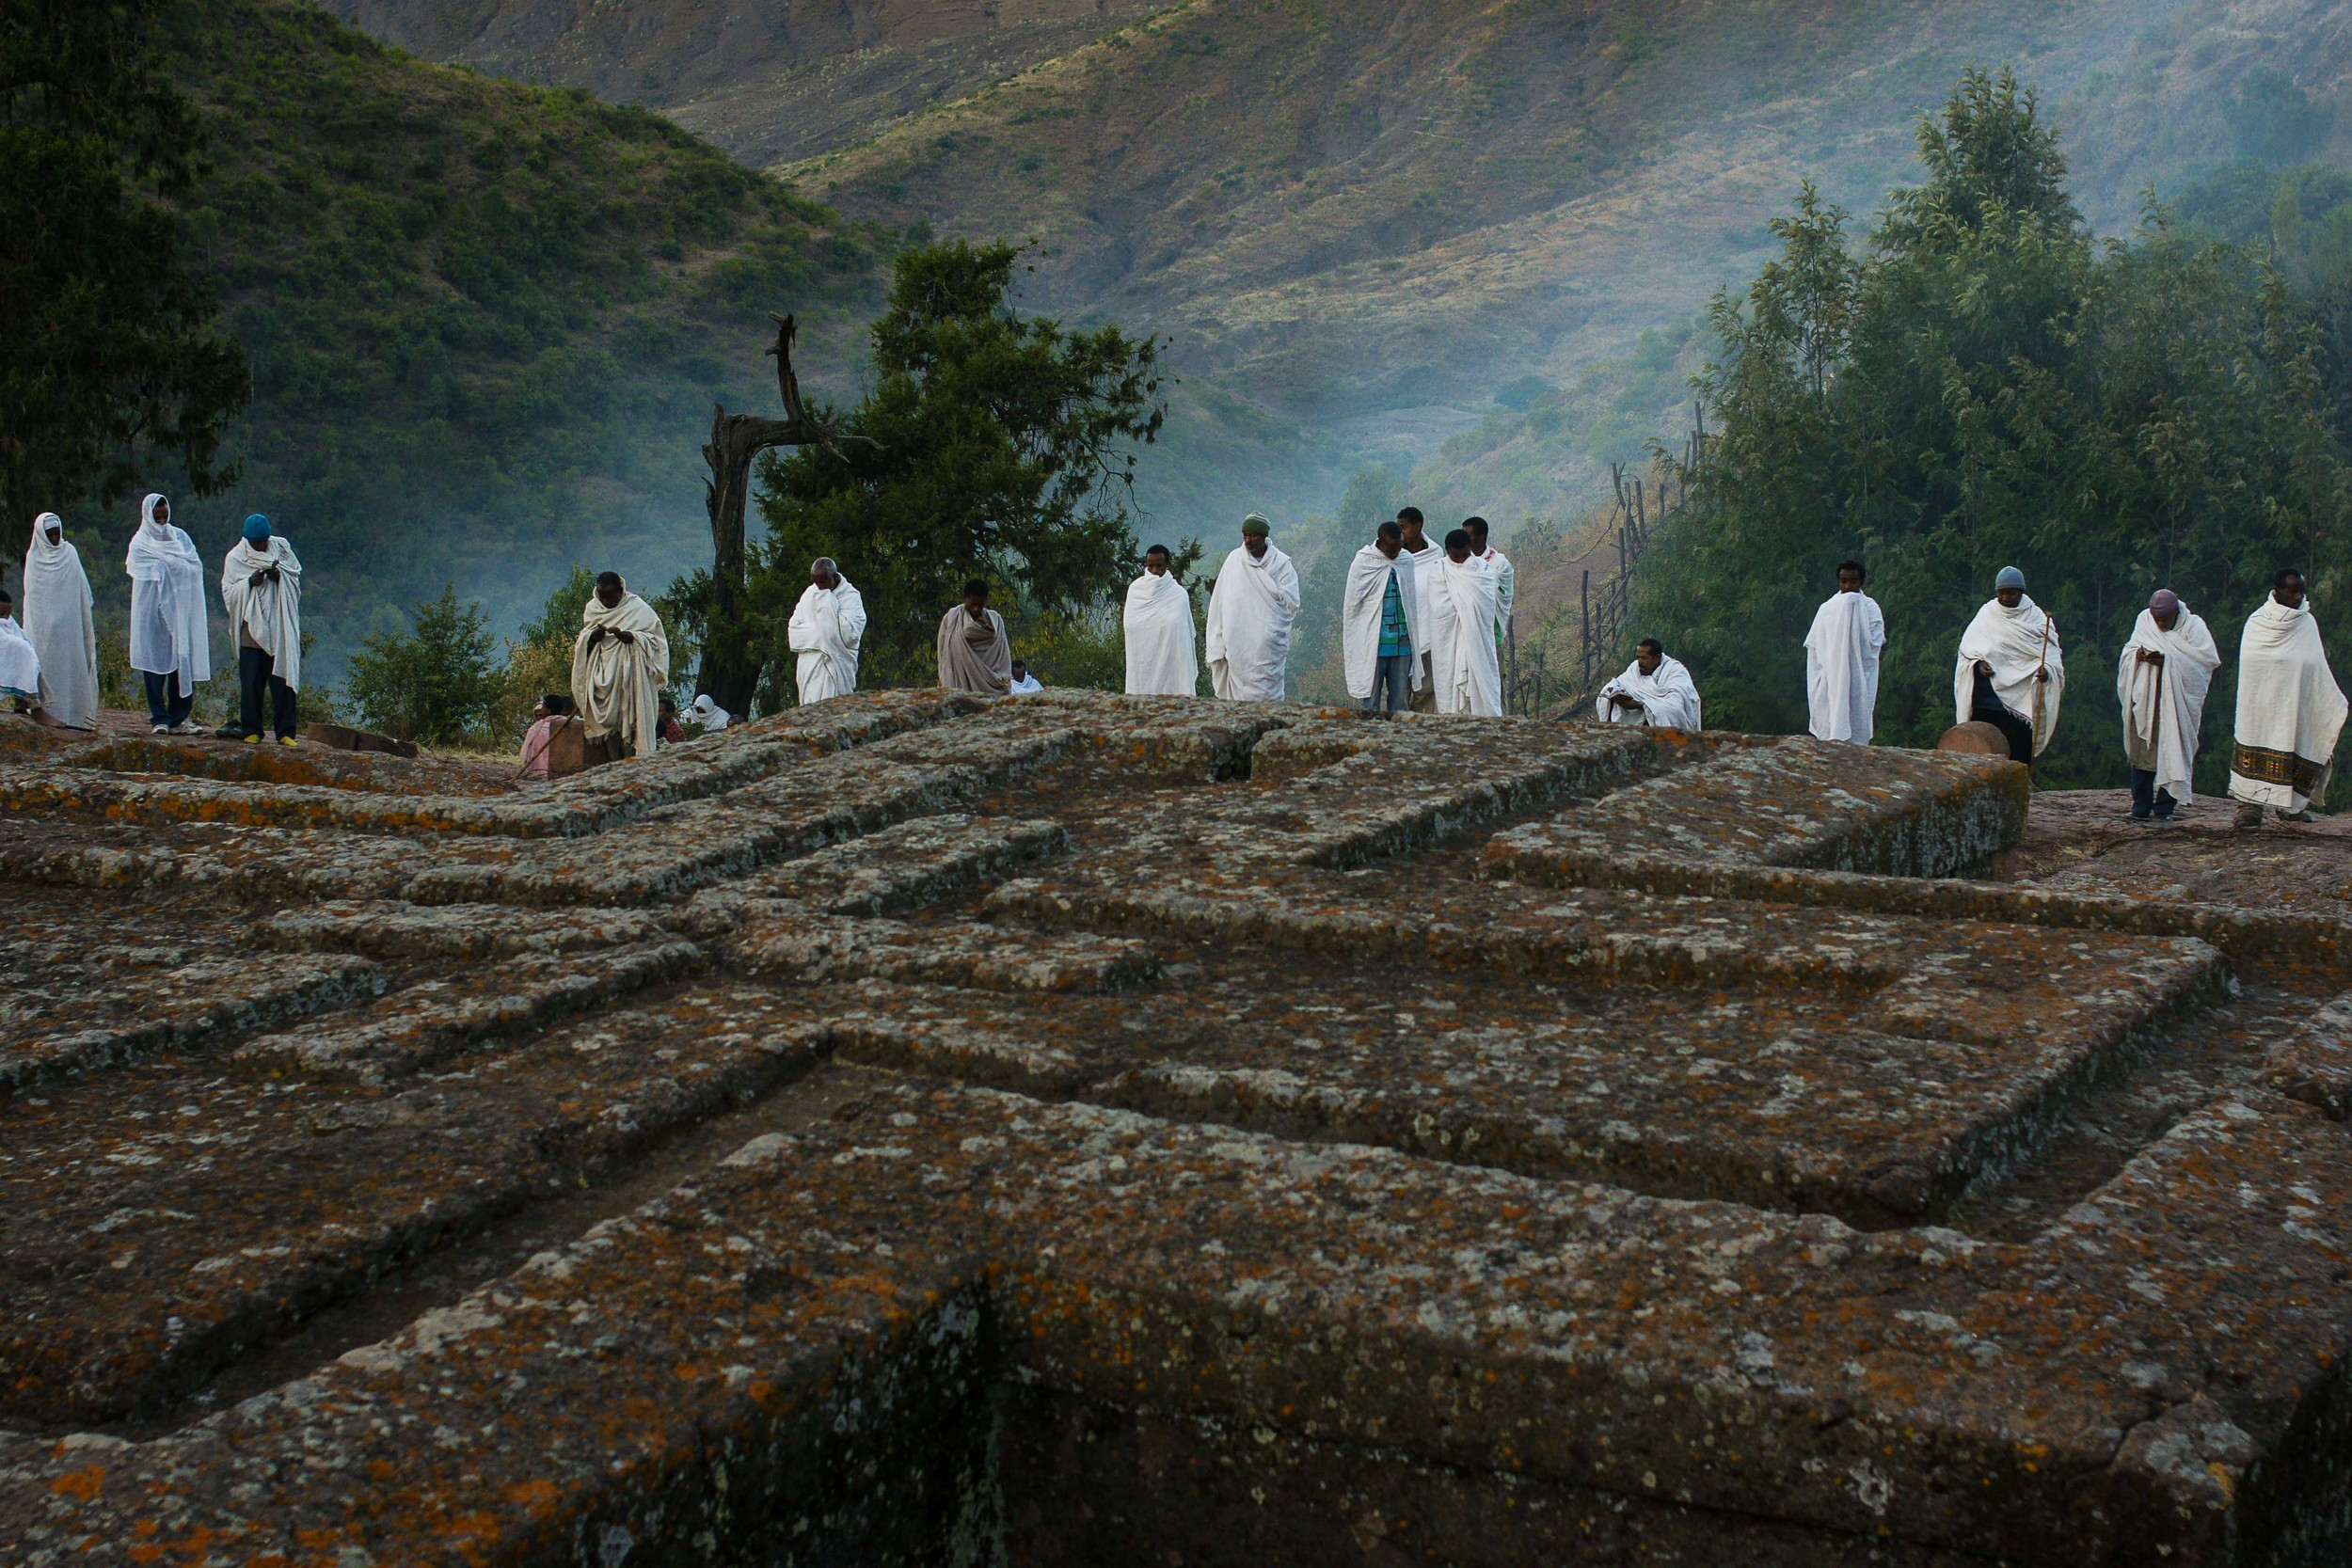 Perched high in the mountains of Northern Ethiopia, the small town of Lalibela is a place of pilgrimage during the time of Orthodox Christmas, and Ethiopian Christianity's second holiest site.Wrapped in shrouds of early morning mist and cotton, Ethiopian Orthodox Christians stand in prayer at the edge of Bet Giyorgis, the rock church carved to resemble a cross.